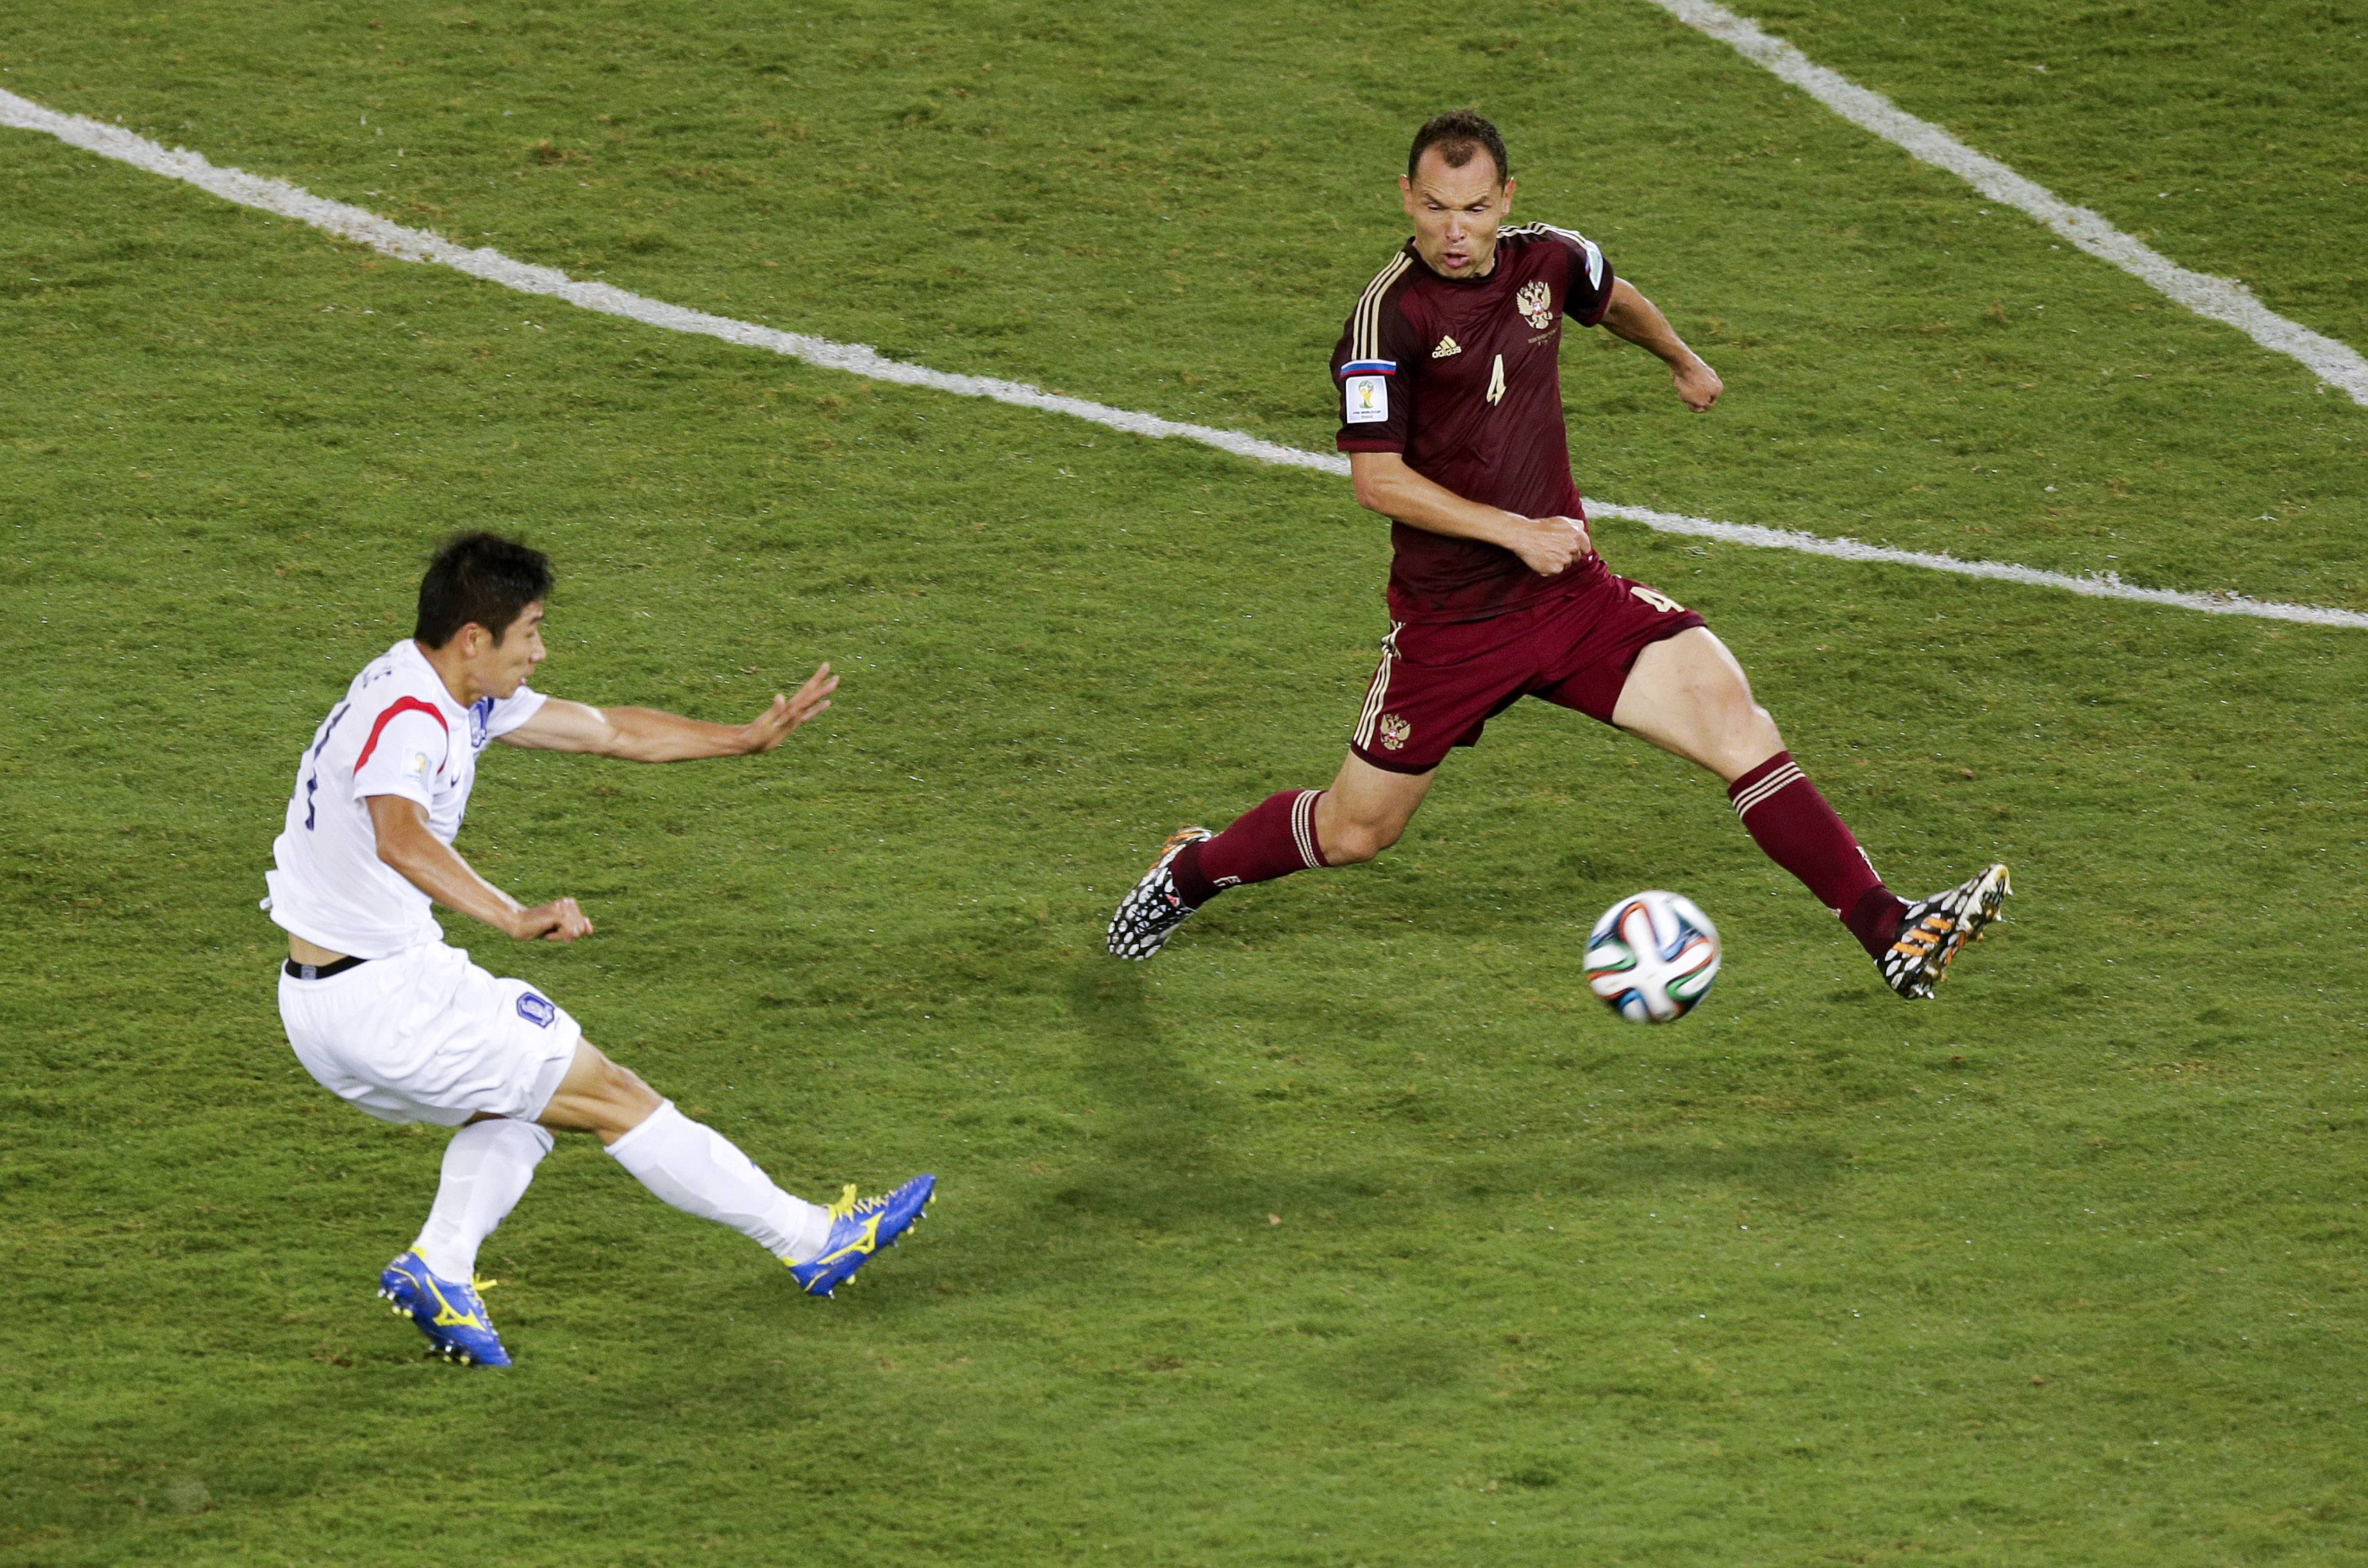 South Korea's Lee Keun-ho, left, scores the opening goal past Russia's Sergei Ignashevich (4) during the group H World Cup soccer match between Russia and South Korea at the Arena Pantanal in Cuiaba, Brazil, Tuesday, June 17, 2014. (AP Photo/Thanassis Stavrakis)